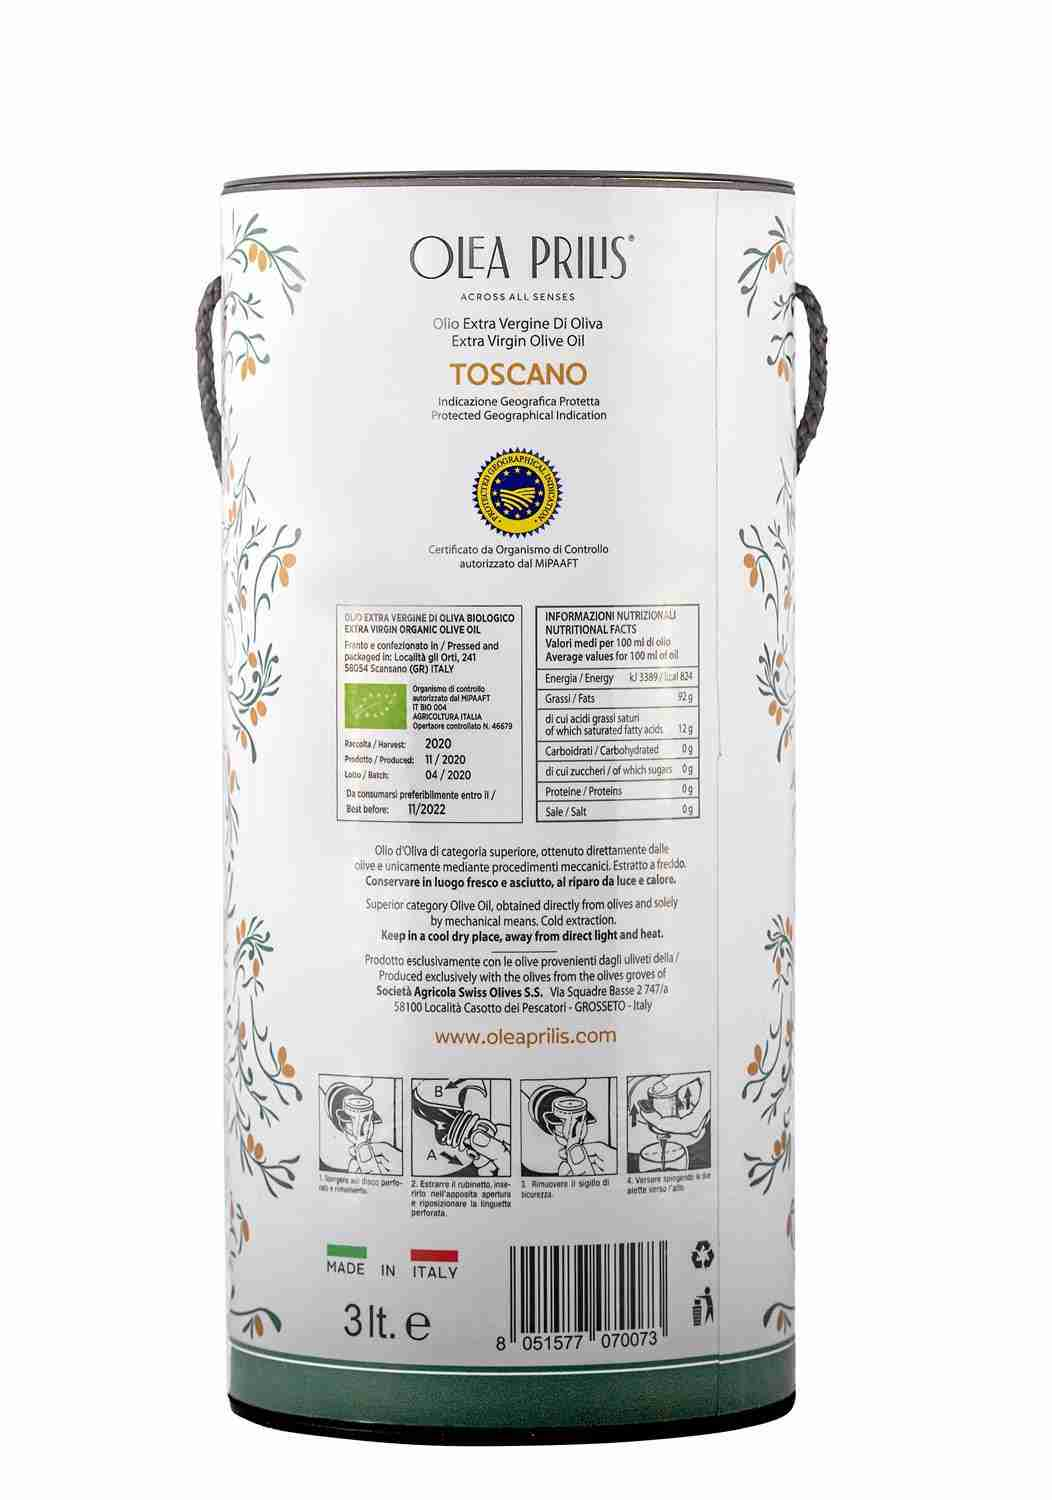 IGP Toscano Organic EVOO In Bag in Tube label details